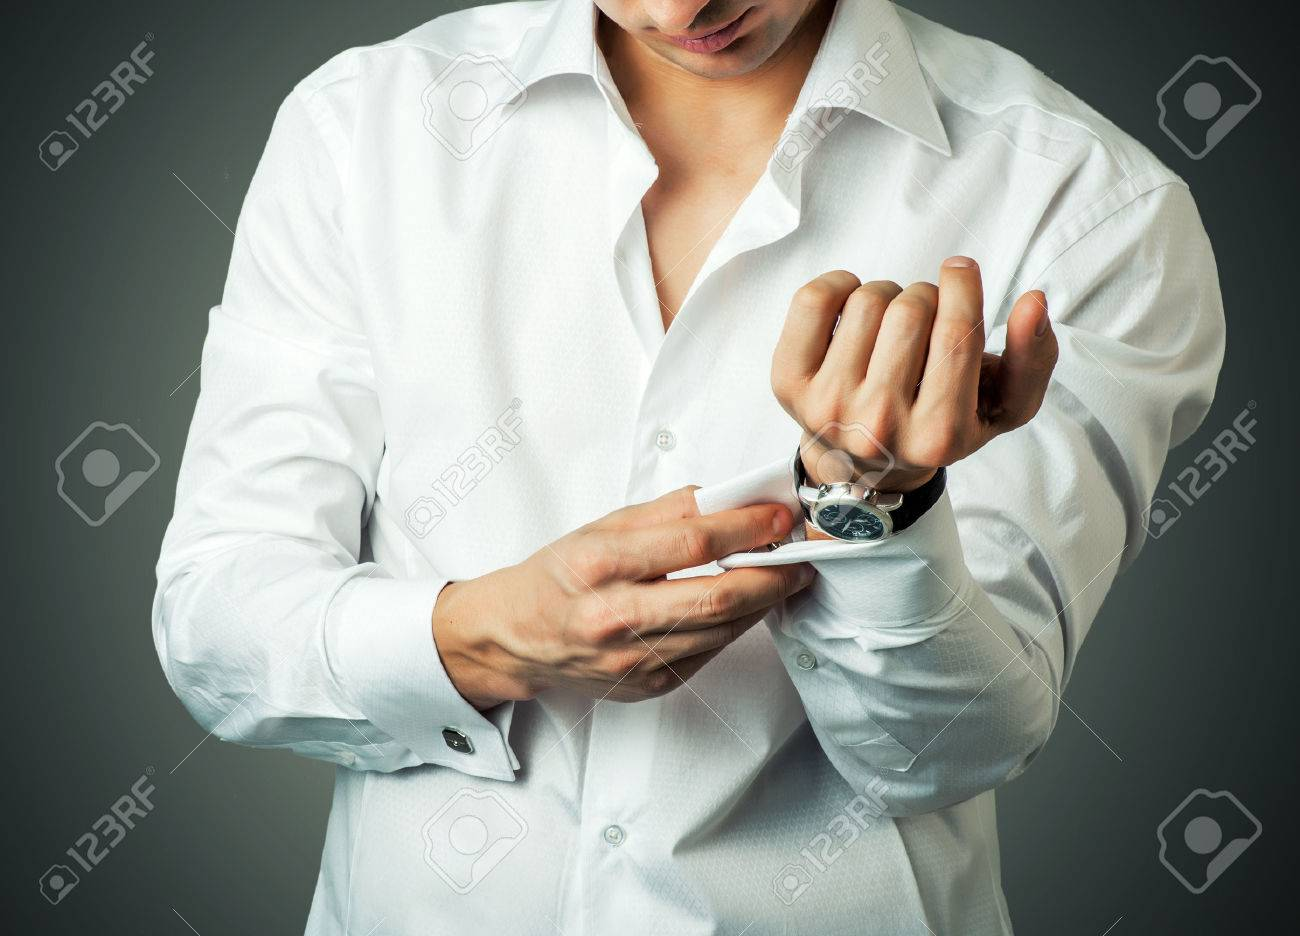 Sexy man buttons cuff-link on French cuffs sleeves luxury white shirt Stock Photo - 24443010